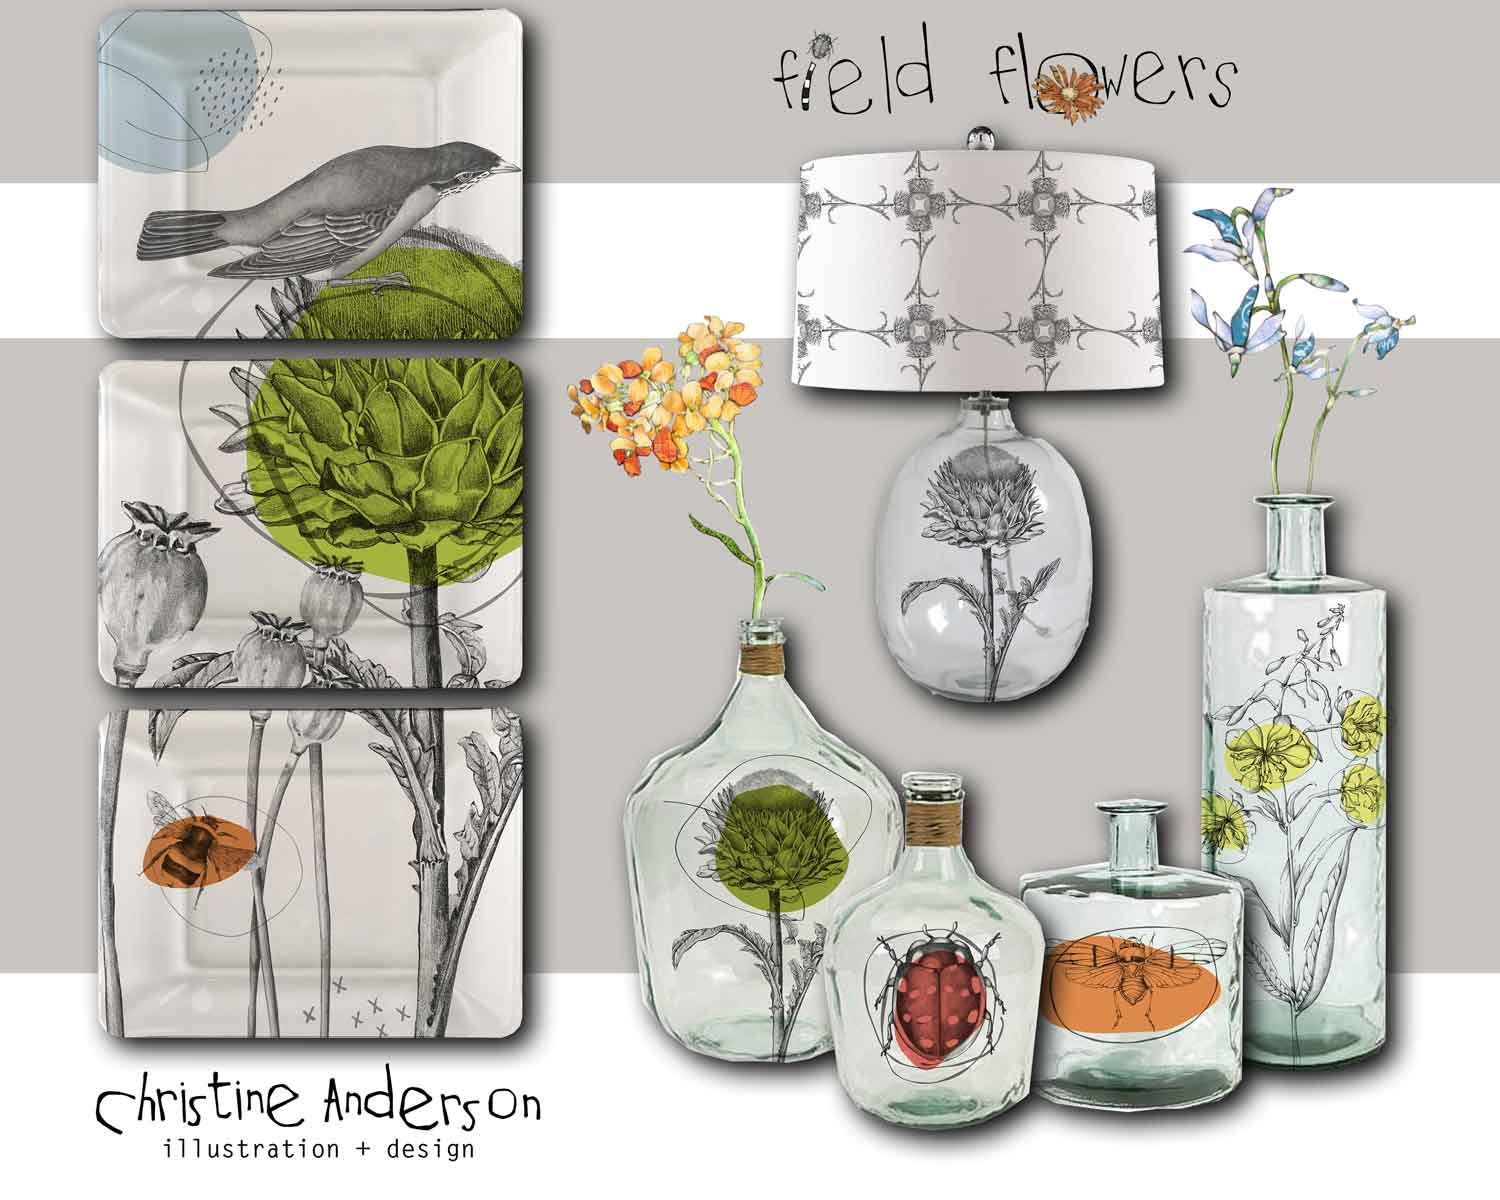 Mats-Graphite-glass-decor.jpg